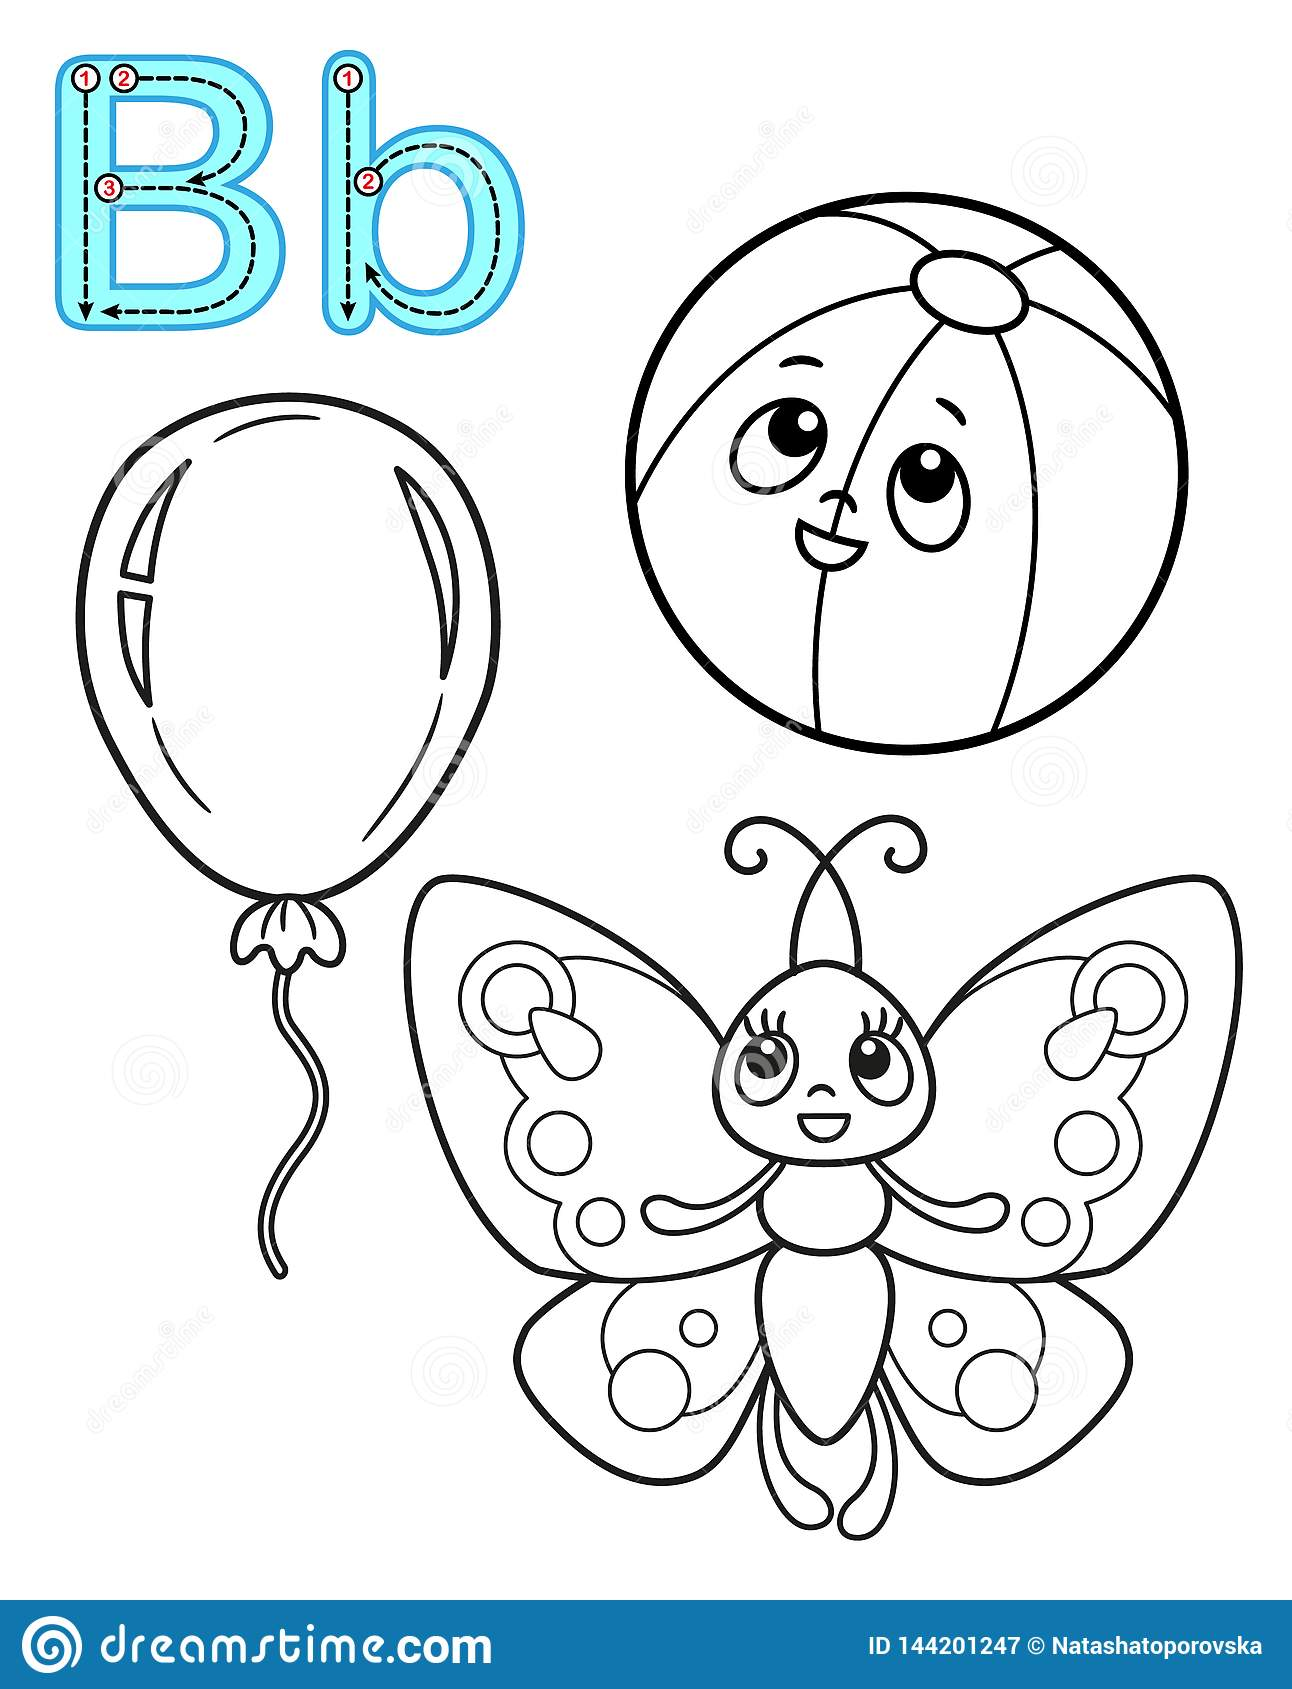 B For Butterfly Worksheet